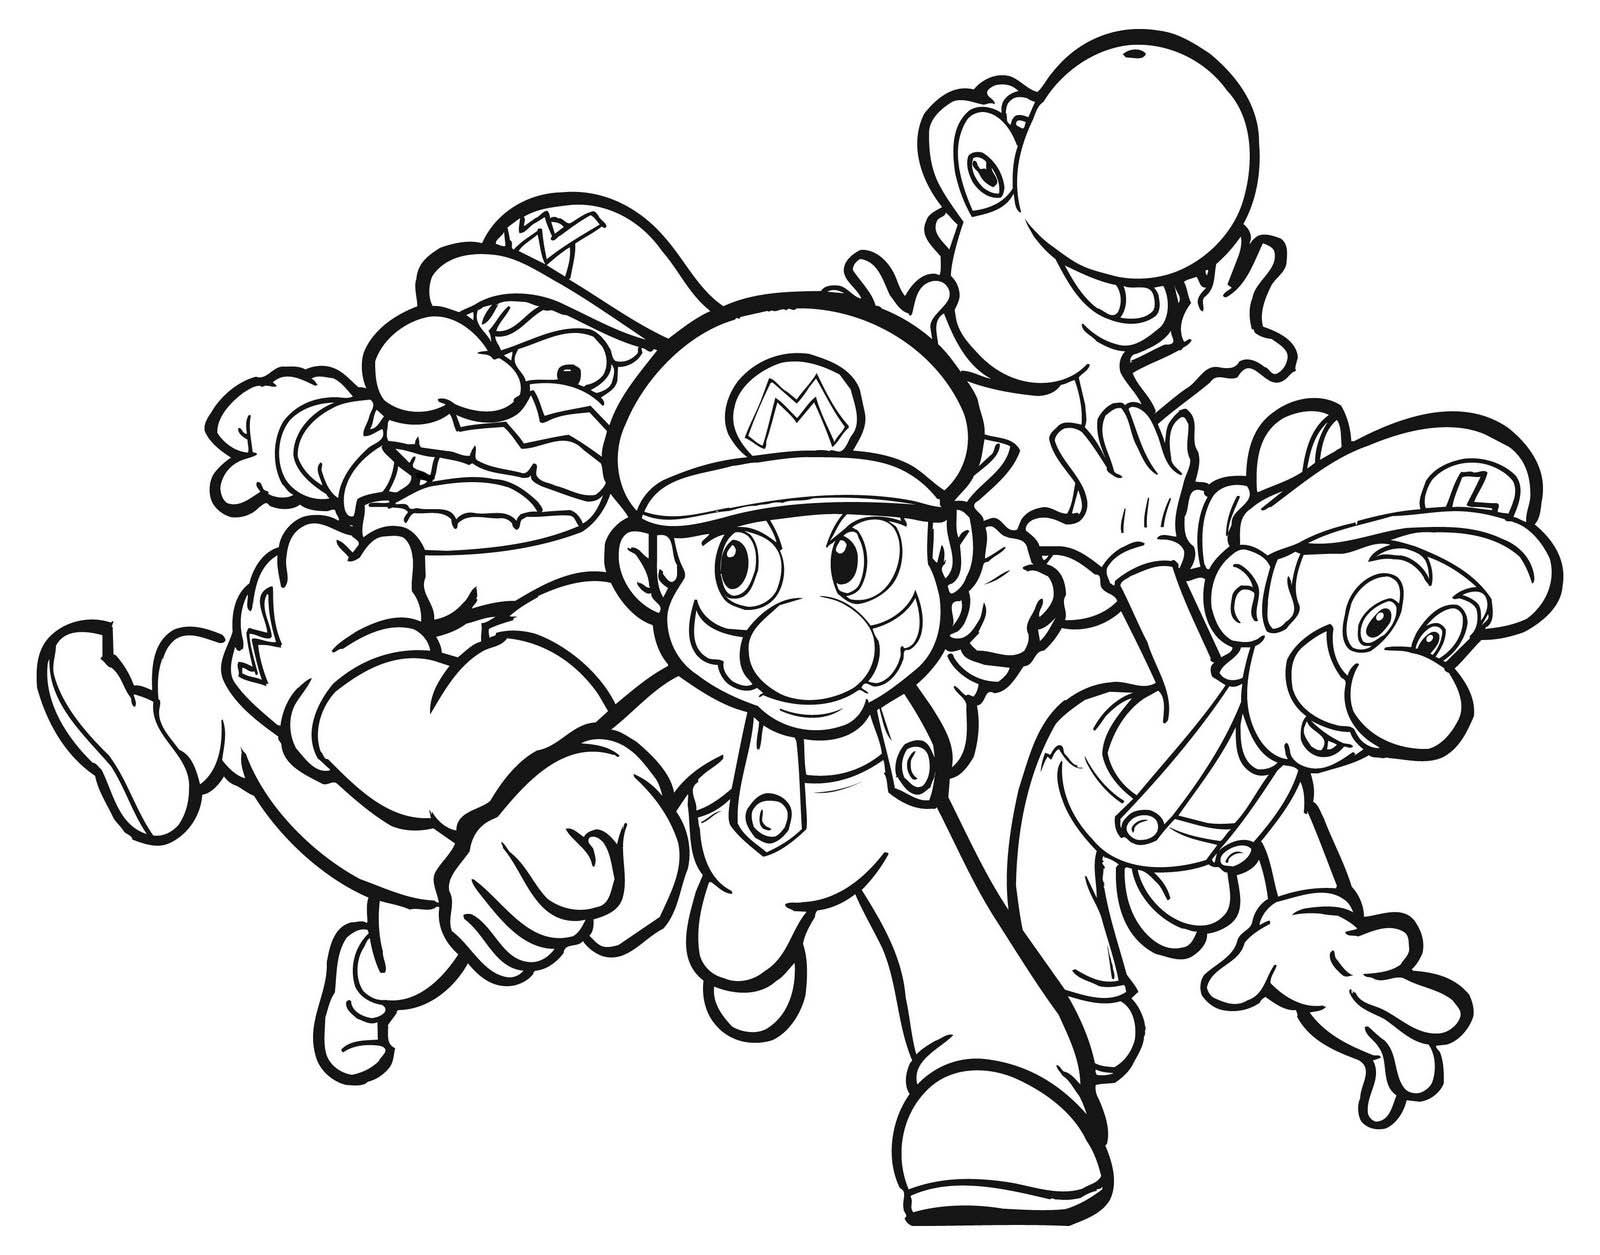 super mario bros coloring sheets pinterest mario bros mario